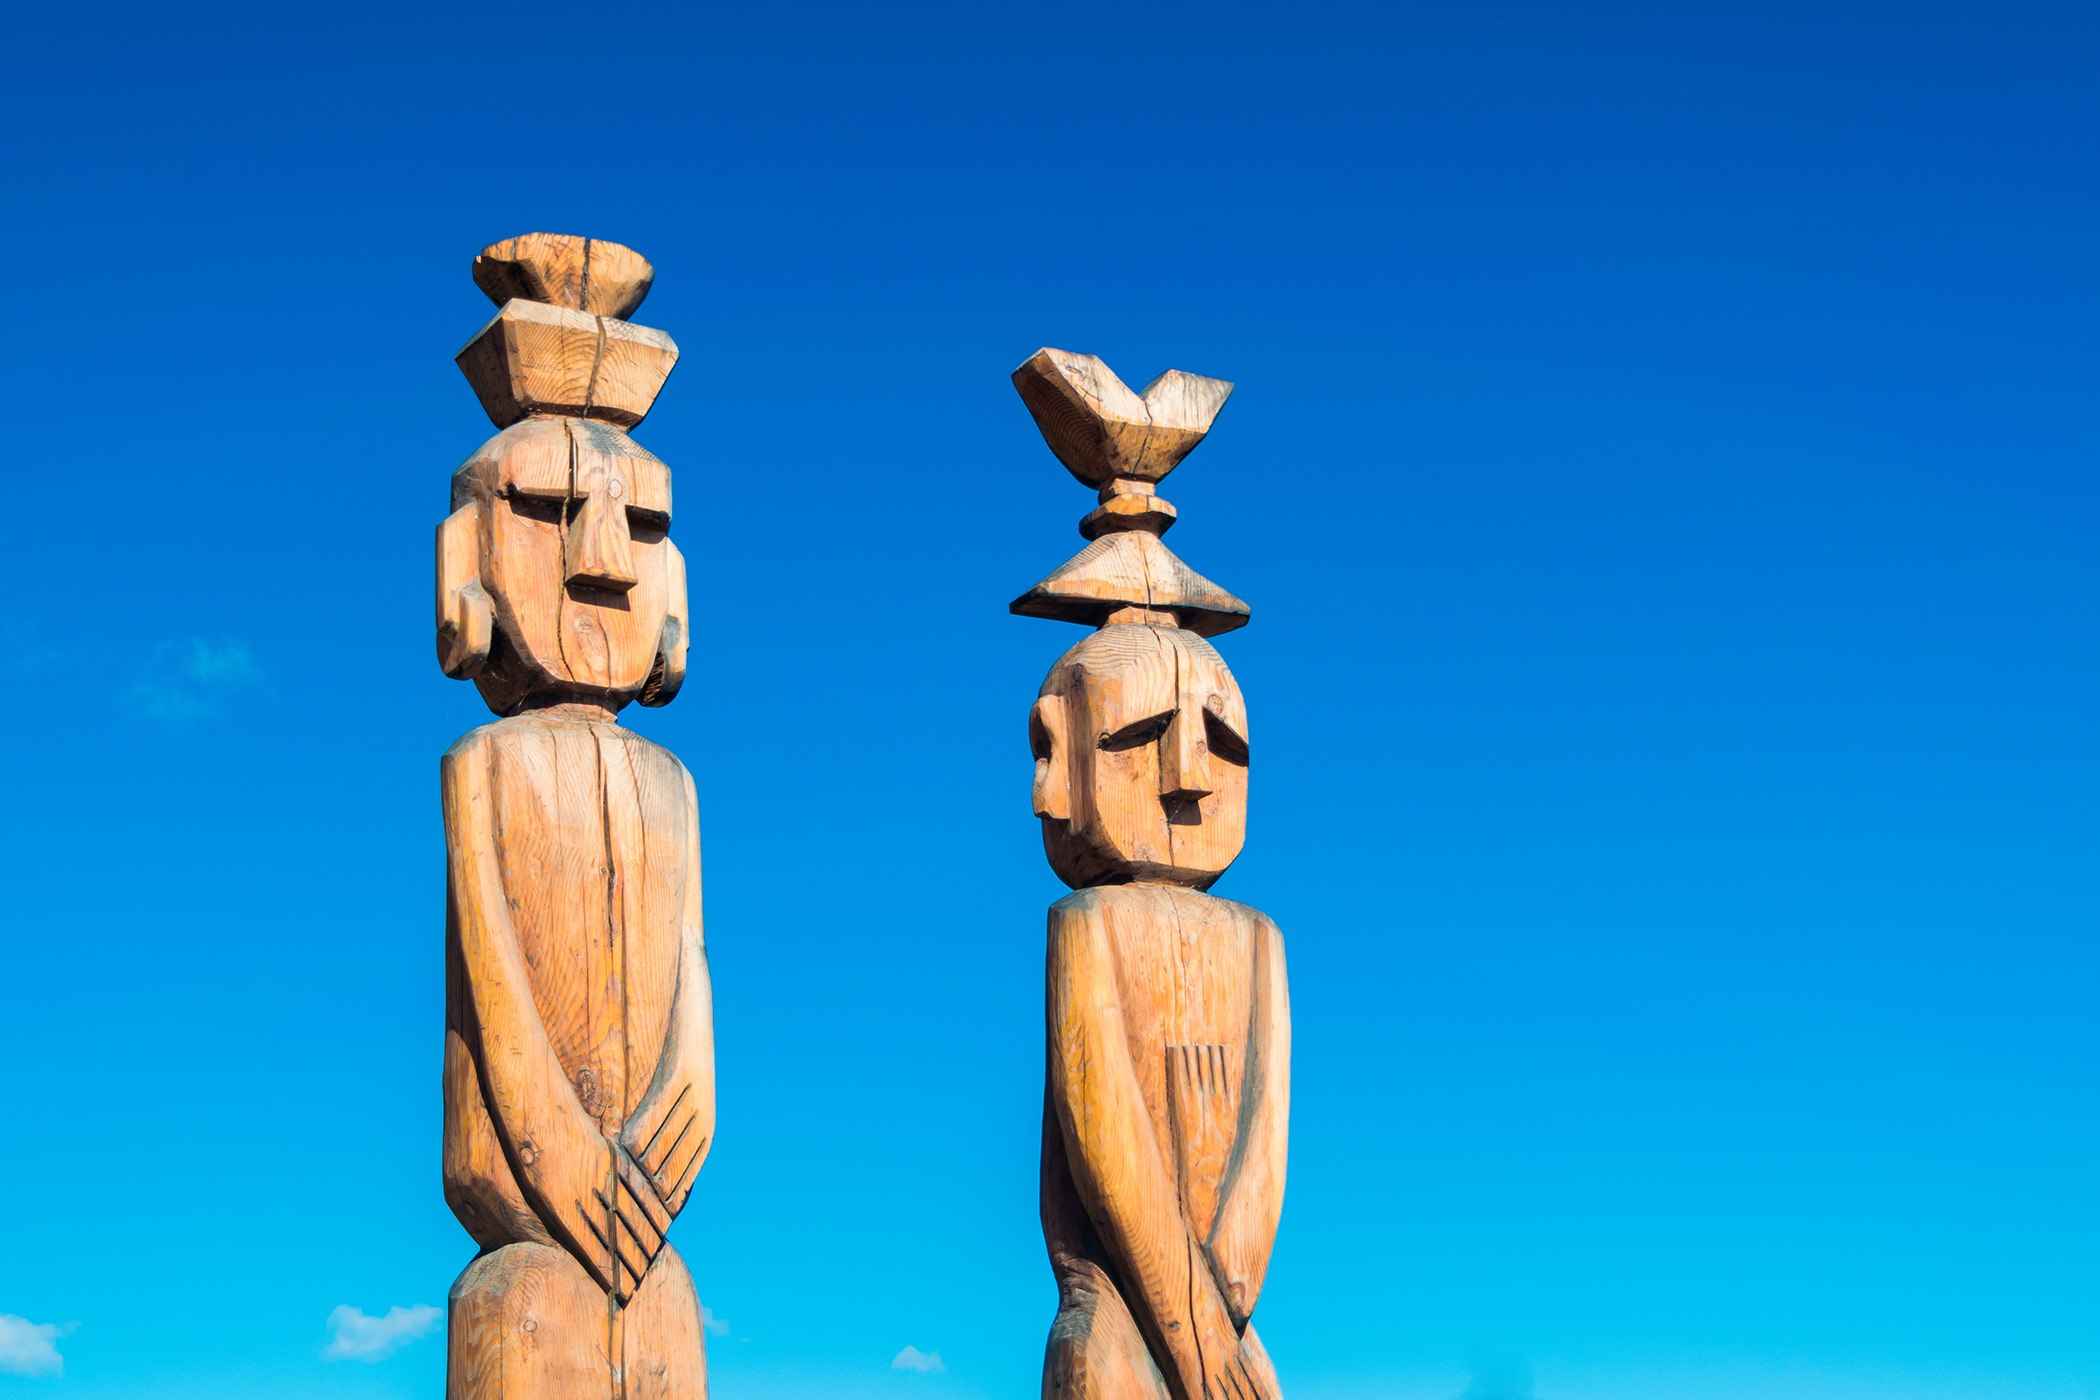 two brown wooden statues